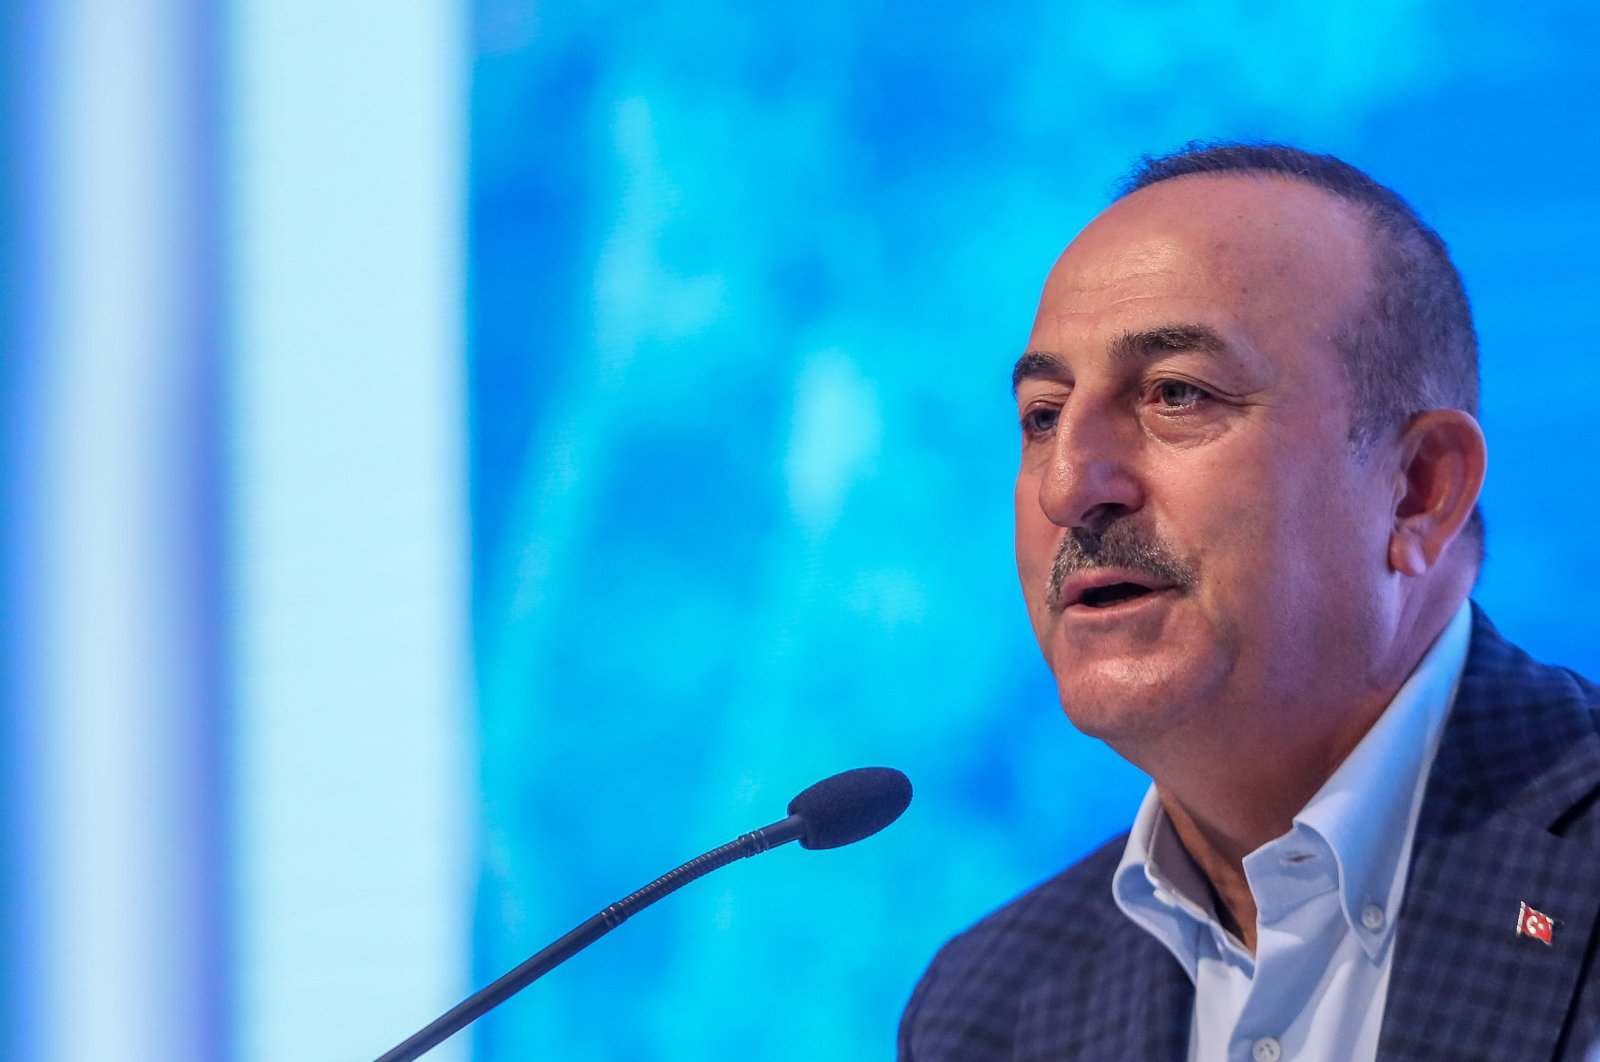 Foreign Minister Mevlüt Çavuşoğlu speaks at a meeting with ambassadors of over 50 countries in Turkey's southern resort city of Antalya, June 20, 2020 (DHA Photo)